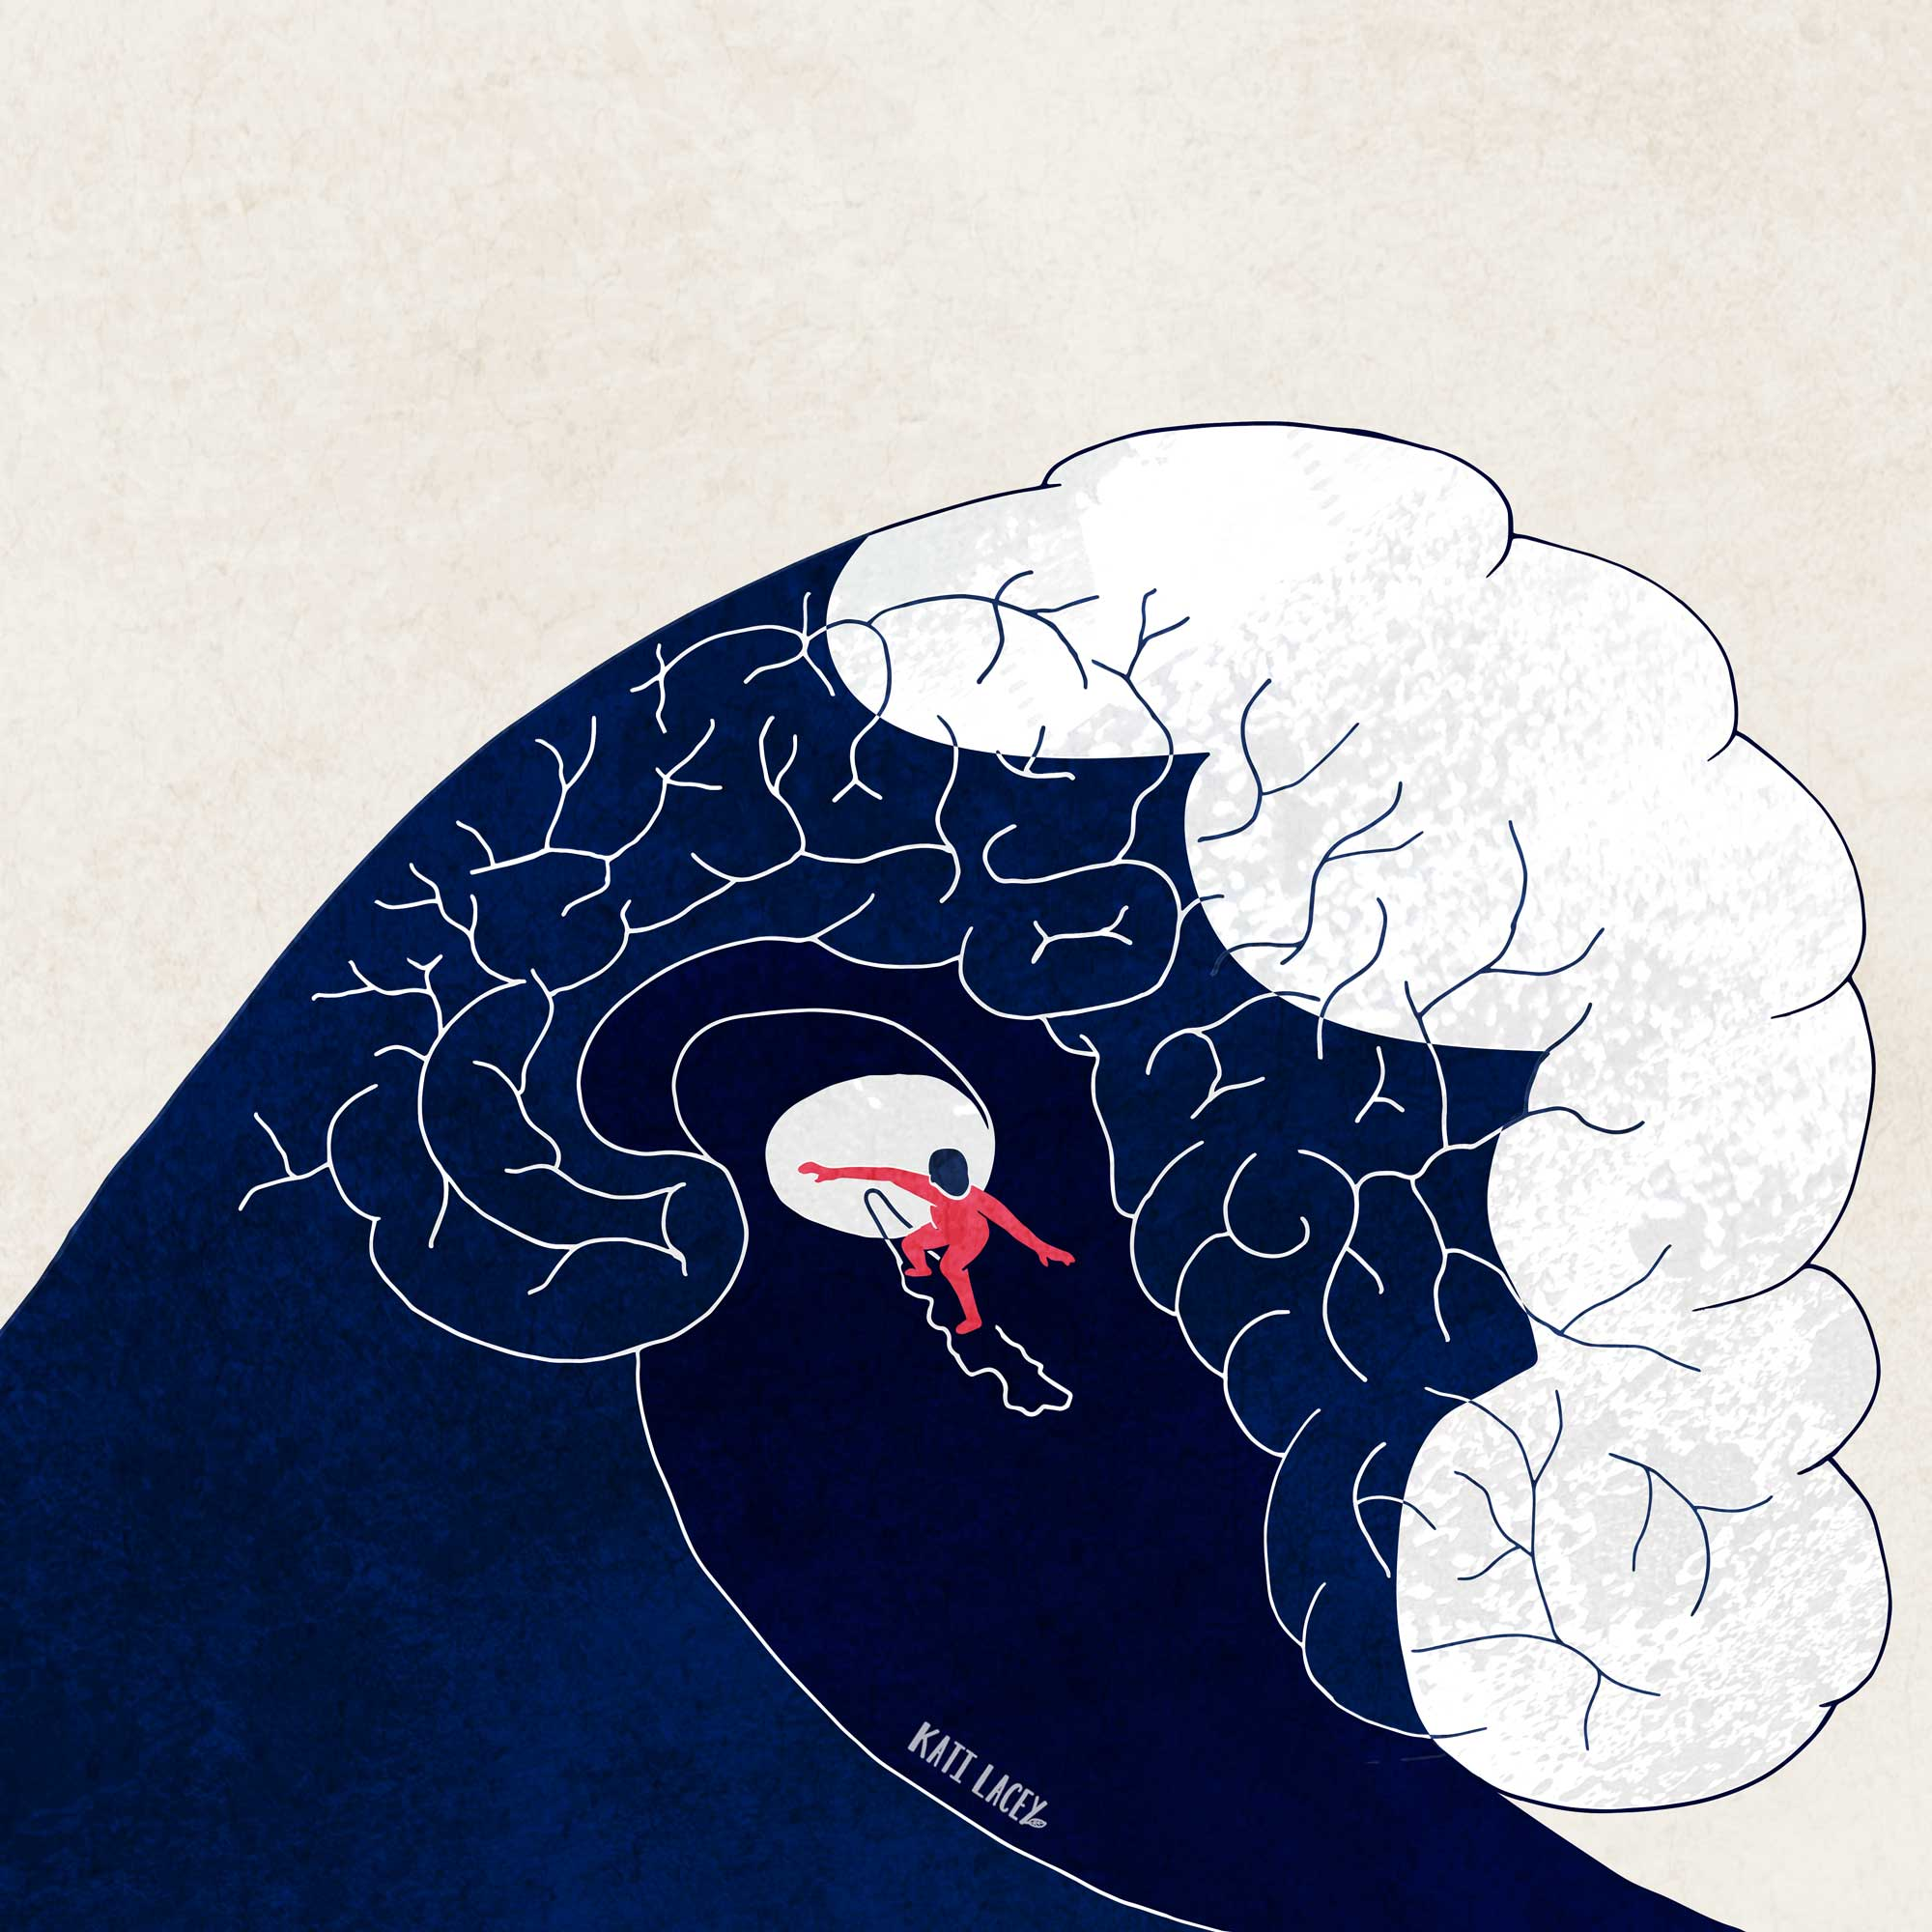 kati-lacey-editorial-illustration-riding the waves of emotions-surfer-brain-tunnel surfing-confidence